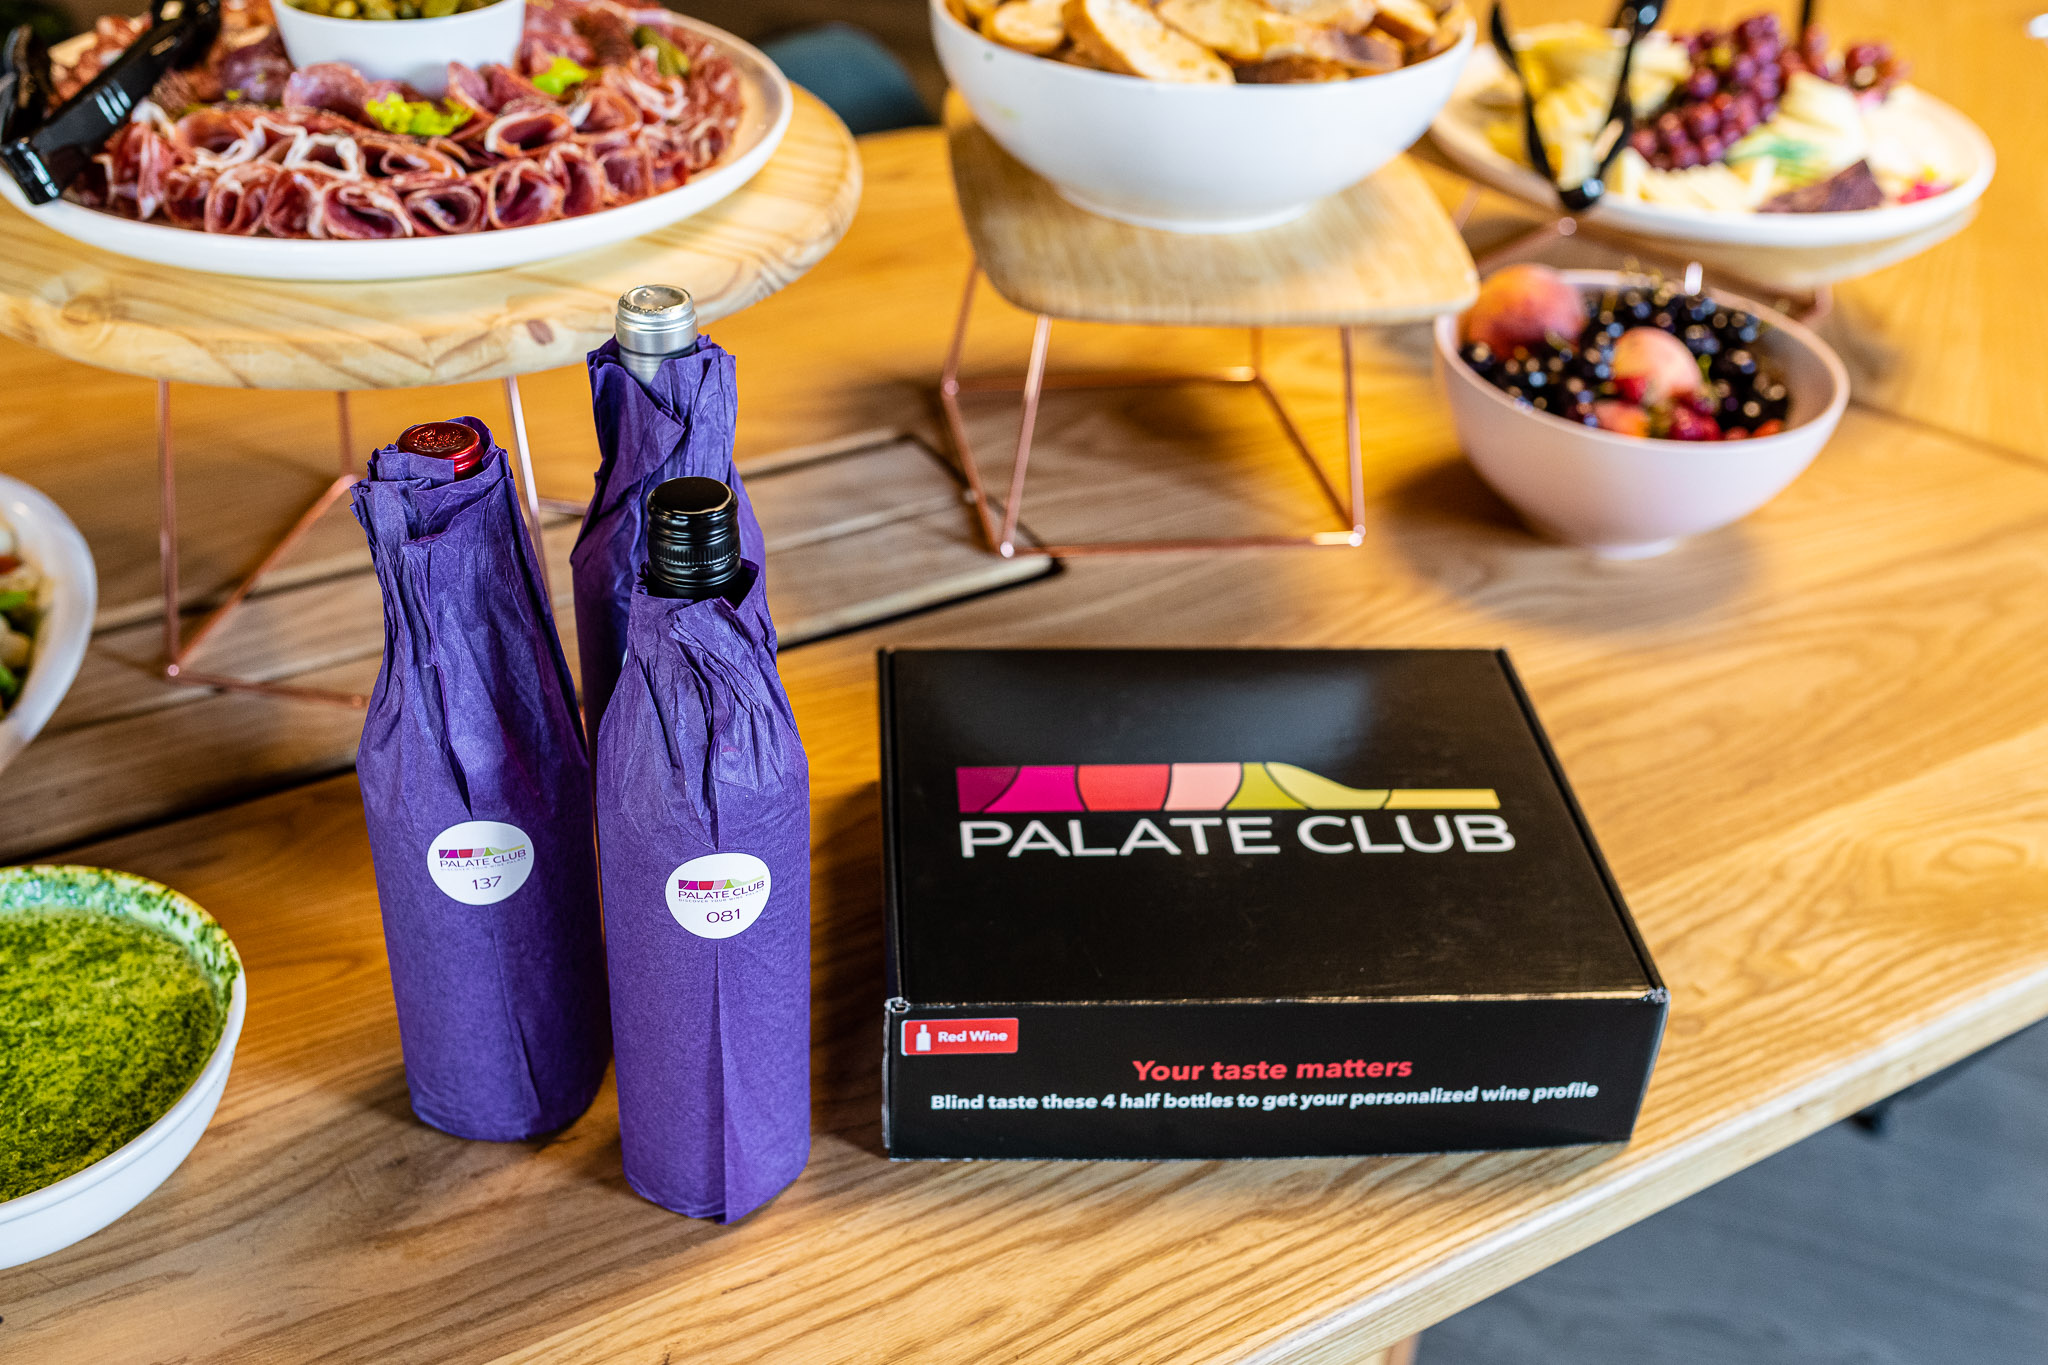 Premium wines matched your taste, shipped when you want them. Easy. Palate Club